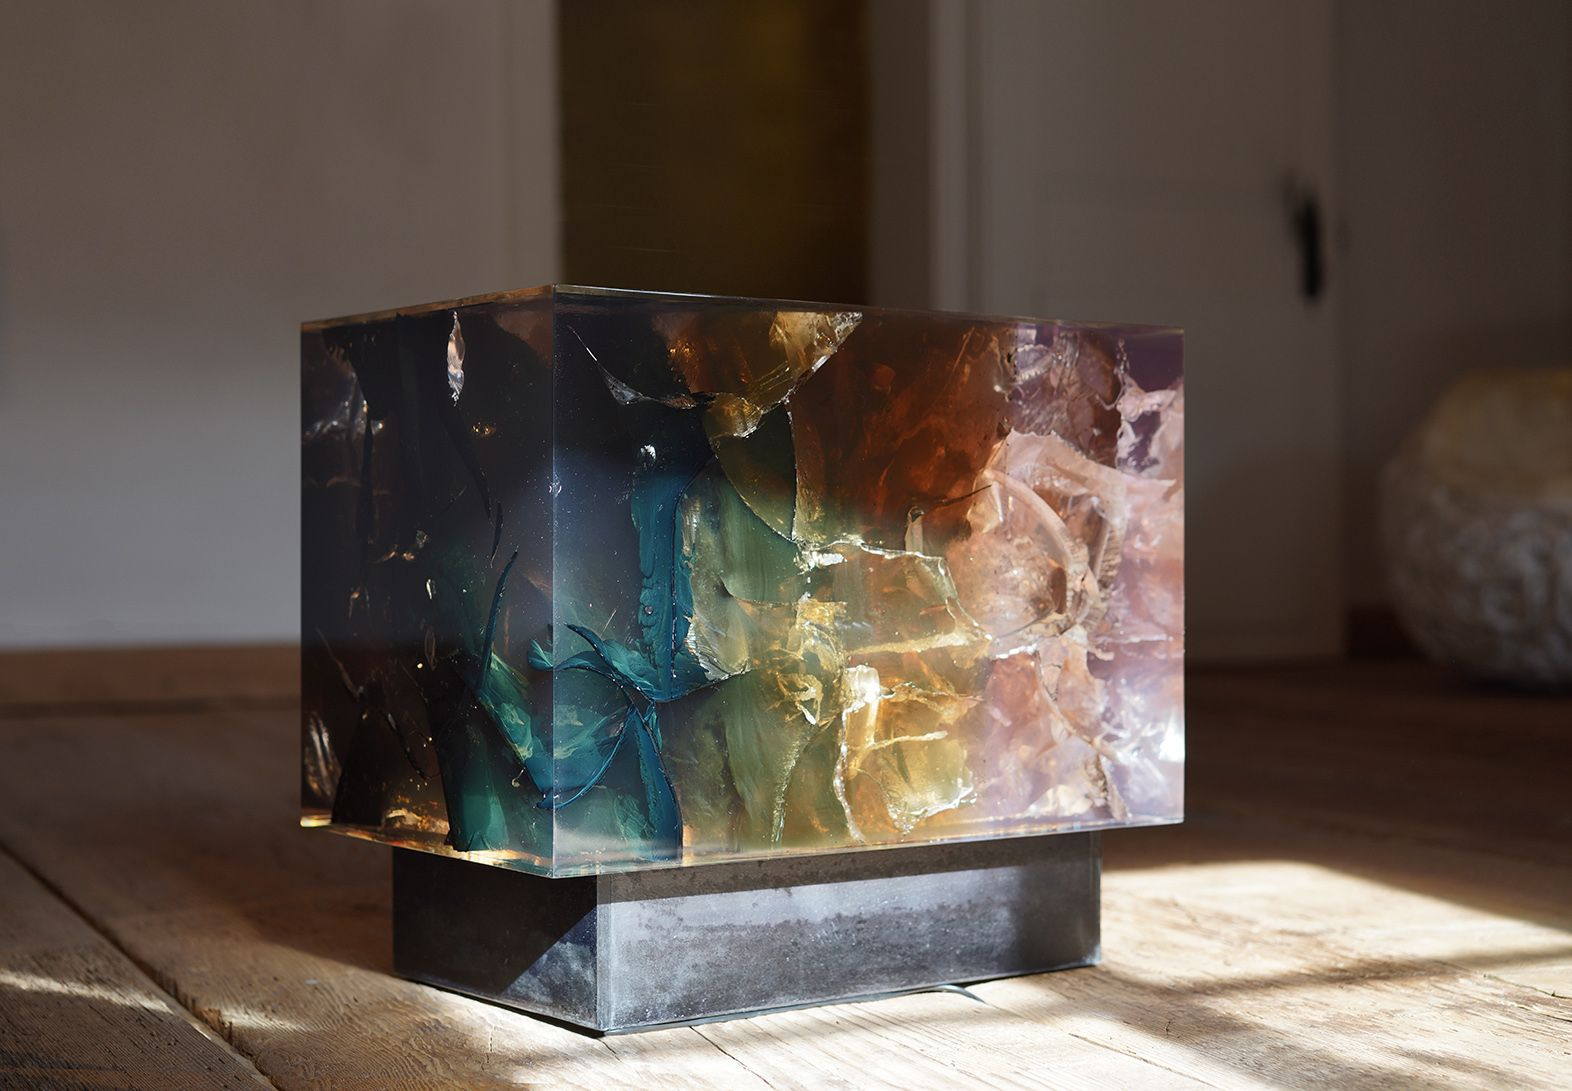 Sculpture - Tom Price - Synthesis 6